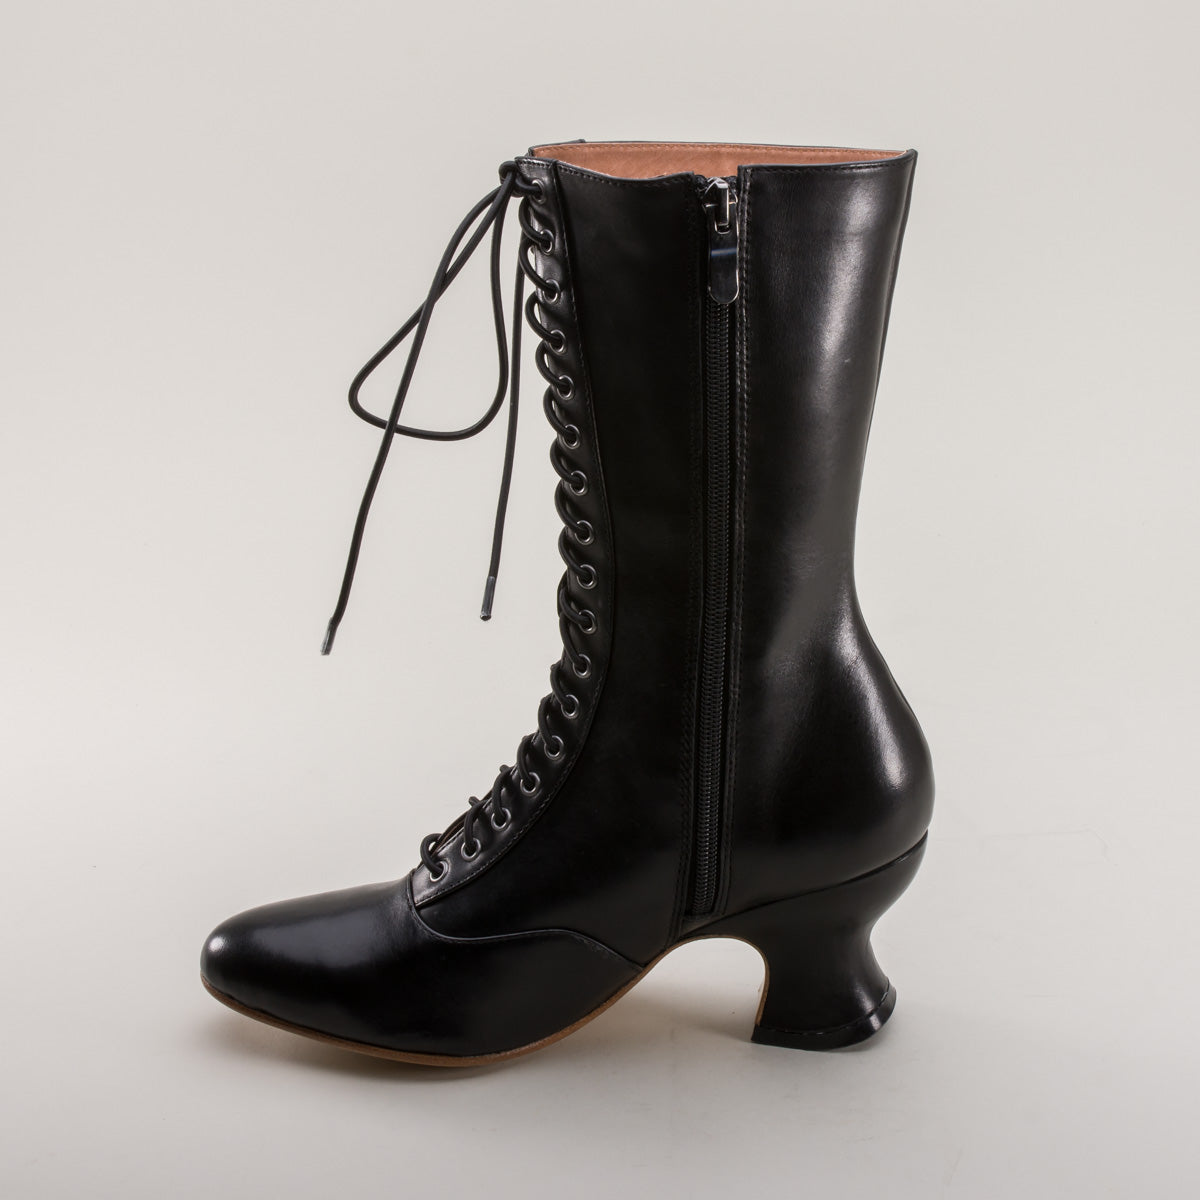 Bernhardt Theatrical Boots (Black)